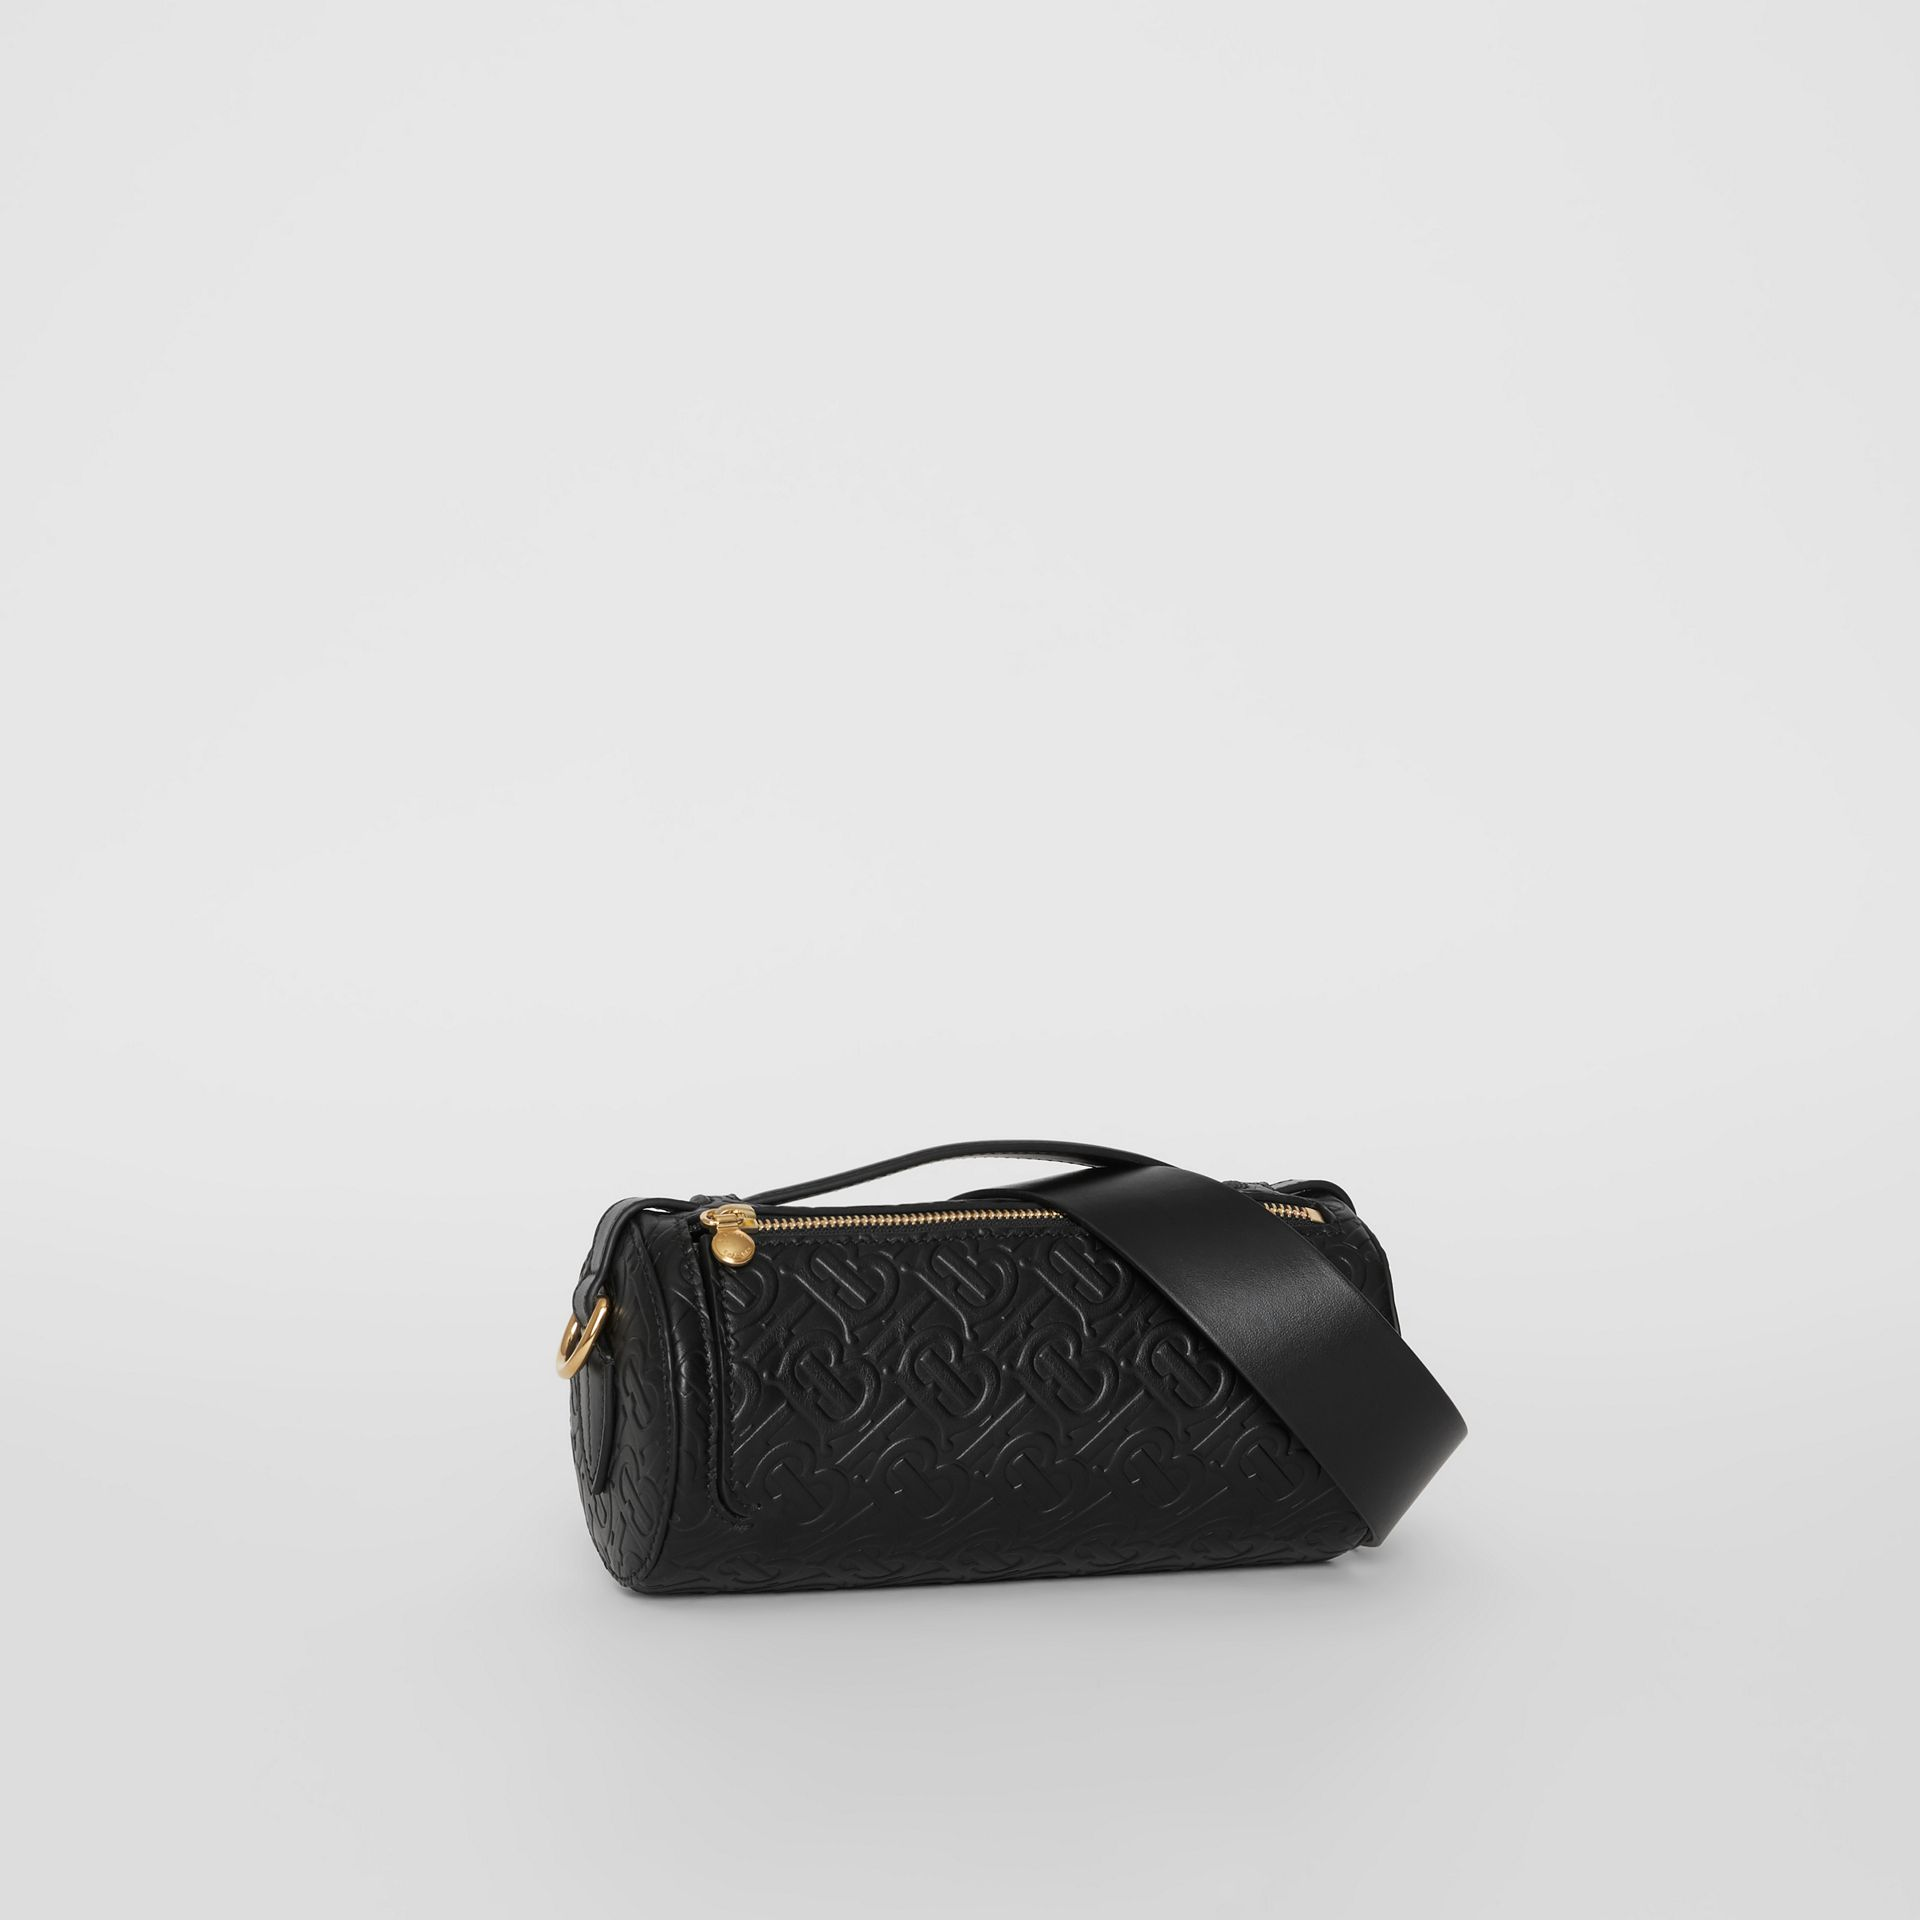 Sac The Barrel en cuir Monogram (Noir) - Femme | Burberry Canada - photo de la galerie 6